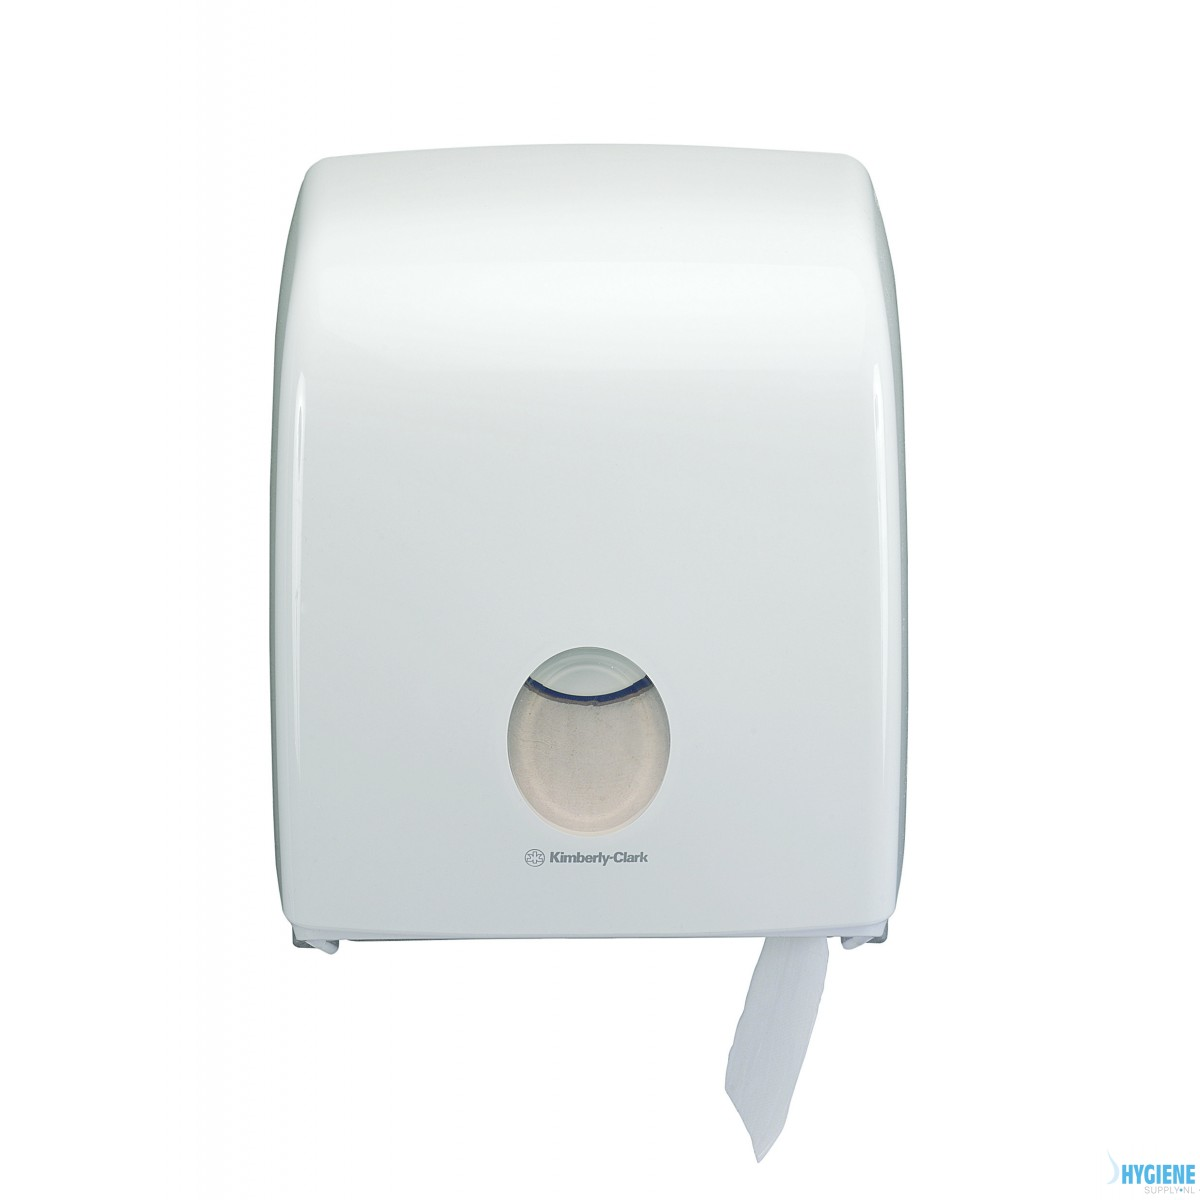 AQUARIUS* Toilettissue Dispenser Mini Jumbo Enkel 6958 Wit - Kimberly Clark